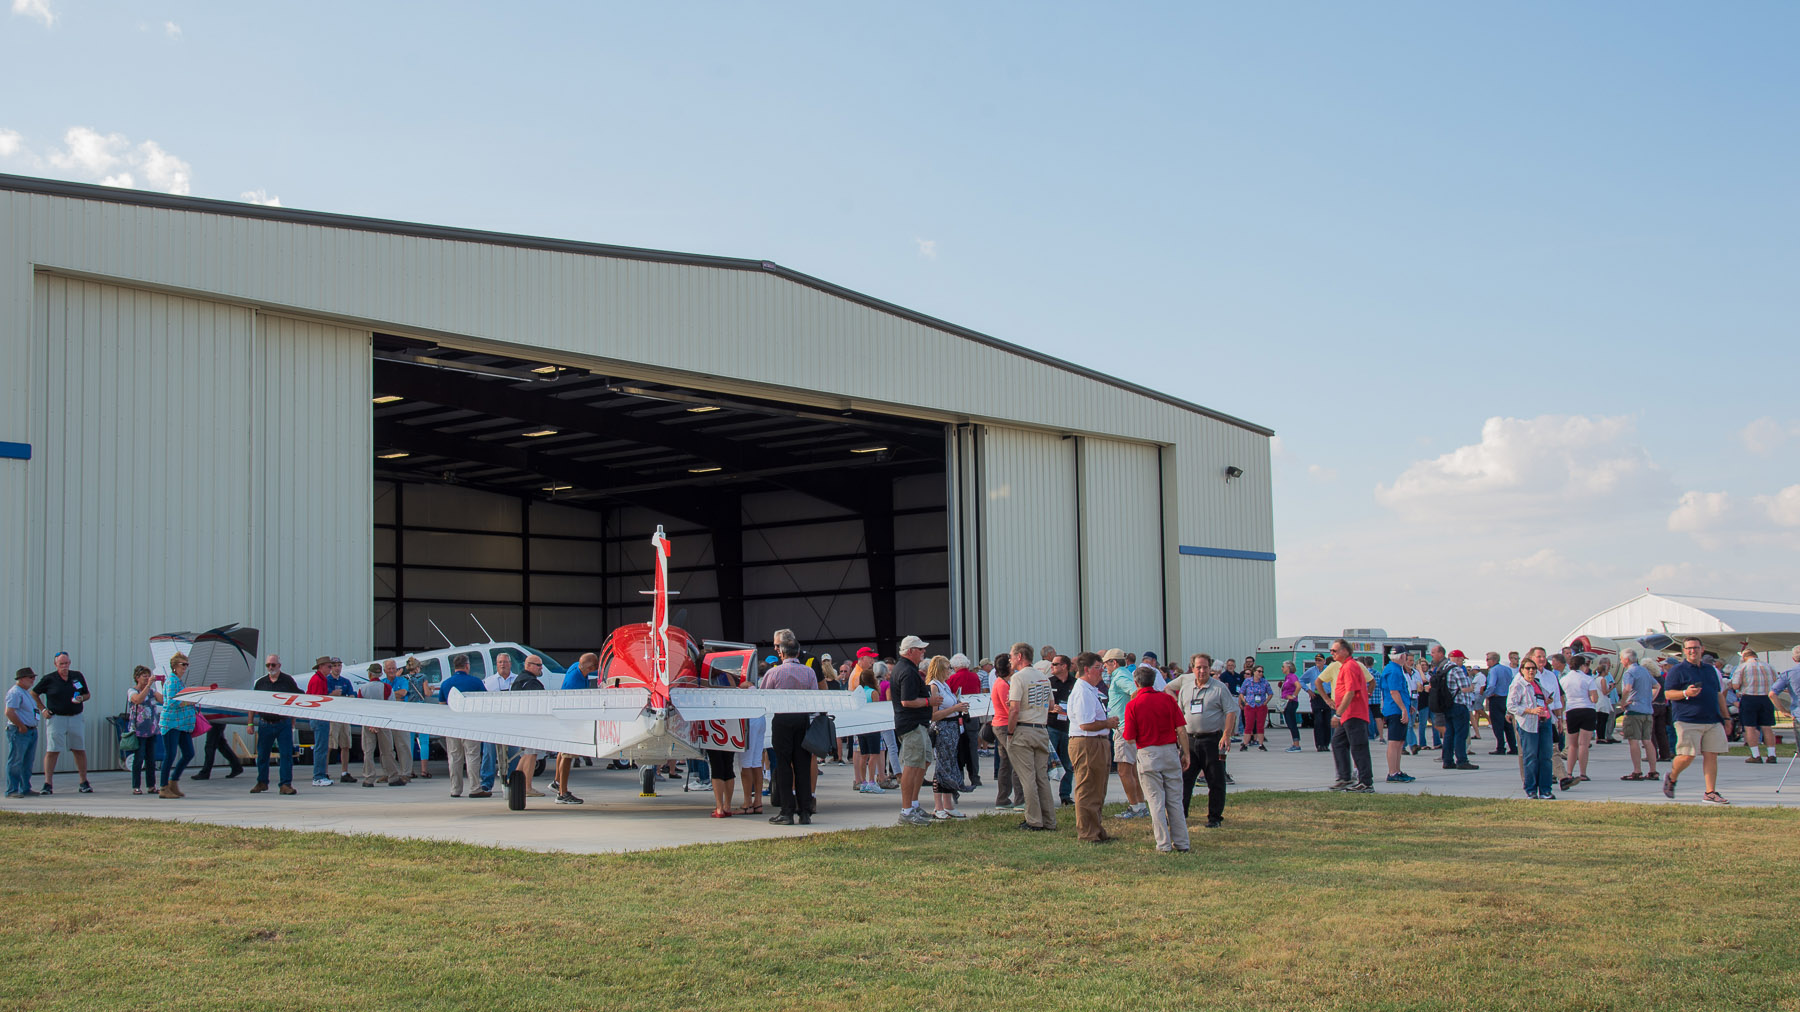 Some 800 American Bonanza Society members gathered at Col. James Jabara Airport in Wichita, Kansas, to celebrate the type club's fiftieth anniversary and the seventieth anniversary of the certification and first delivery of the acclaimed Beechcraft Bonanza. Photo courtesy of Visual Media Group.